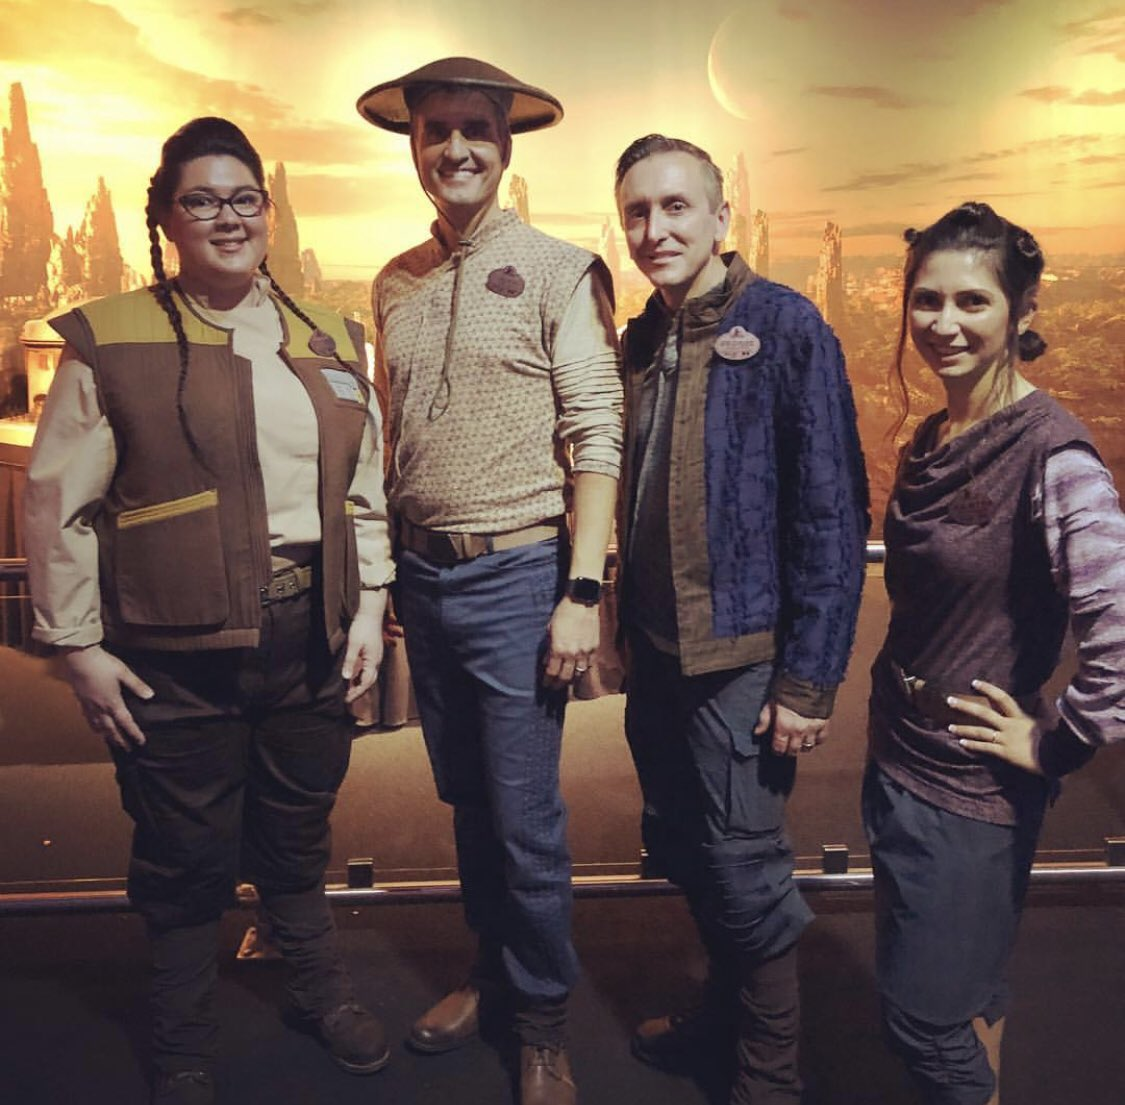 Galaxy's Edge Cast Member Costumes (Photo Credit: @DisneyExaminer on Twitter)